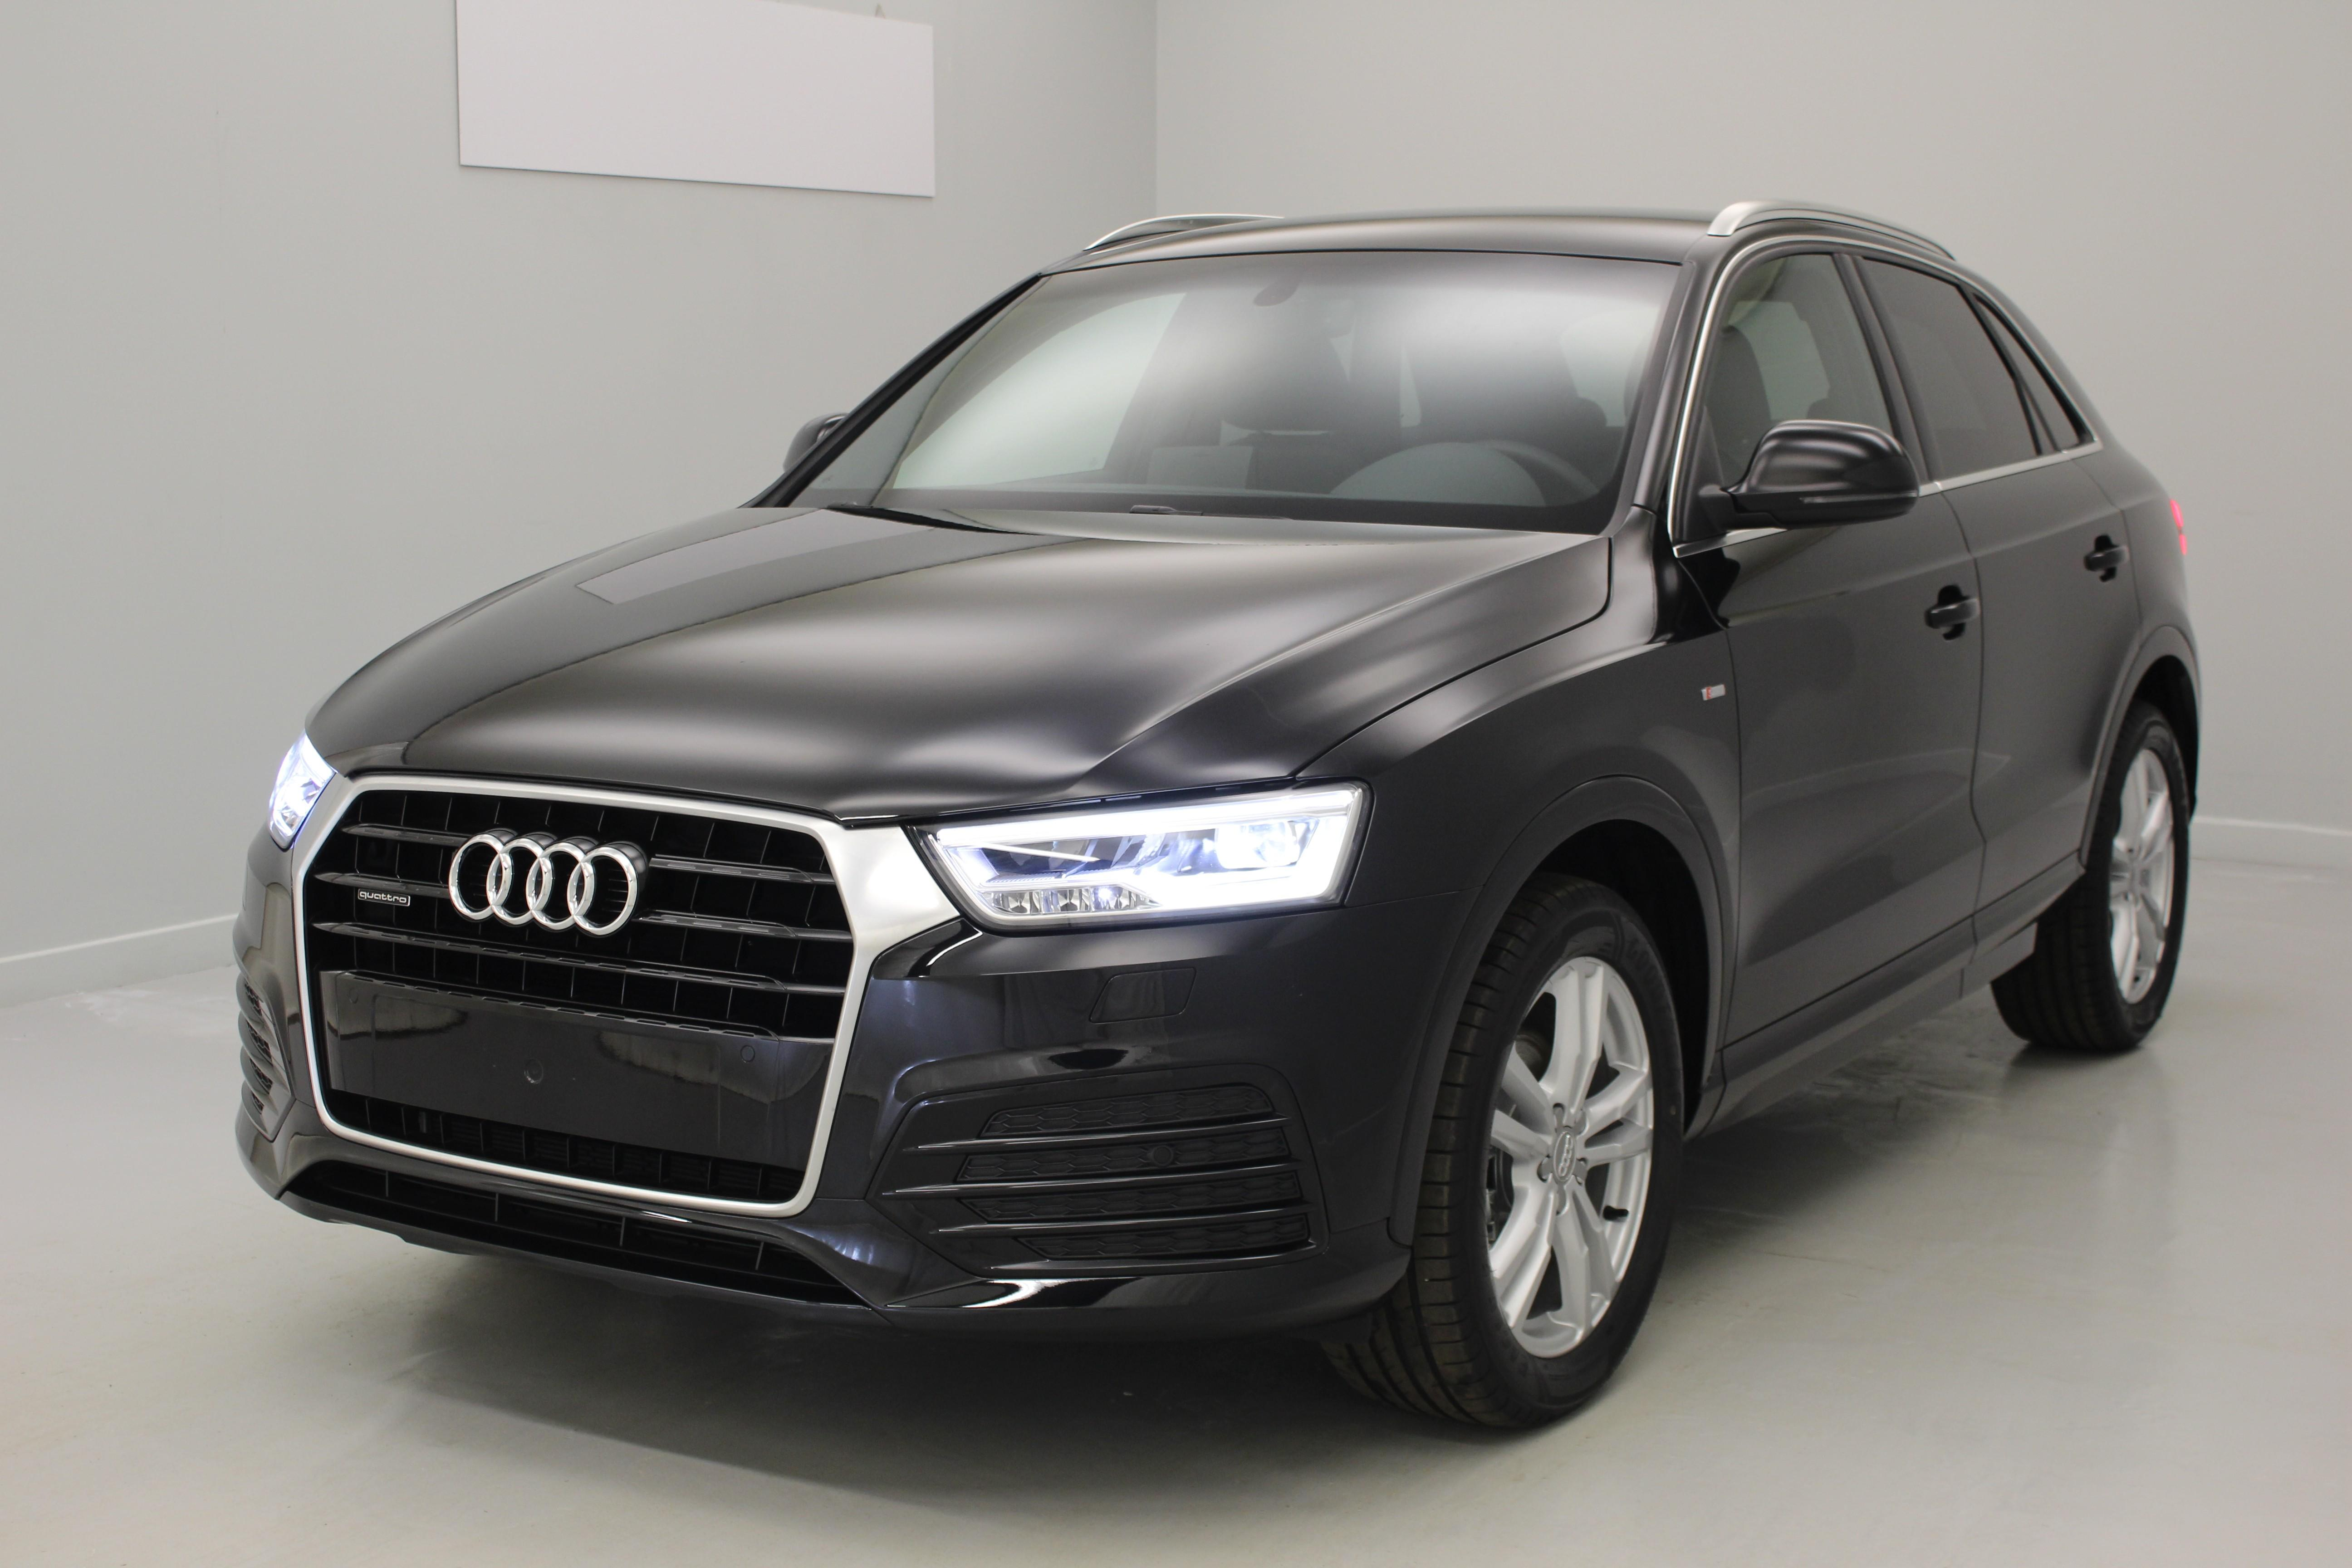 audi q3 2 0 tdi 150 ch s tronic 7 quattro s line noir. Black Bedroom Furniture Sets. Home Design Ideas